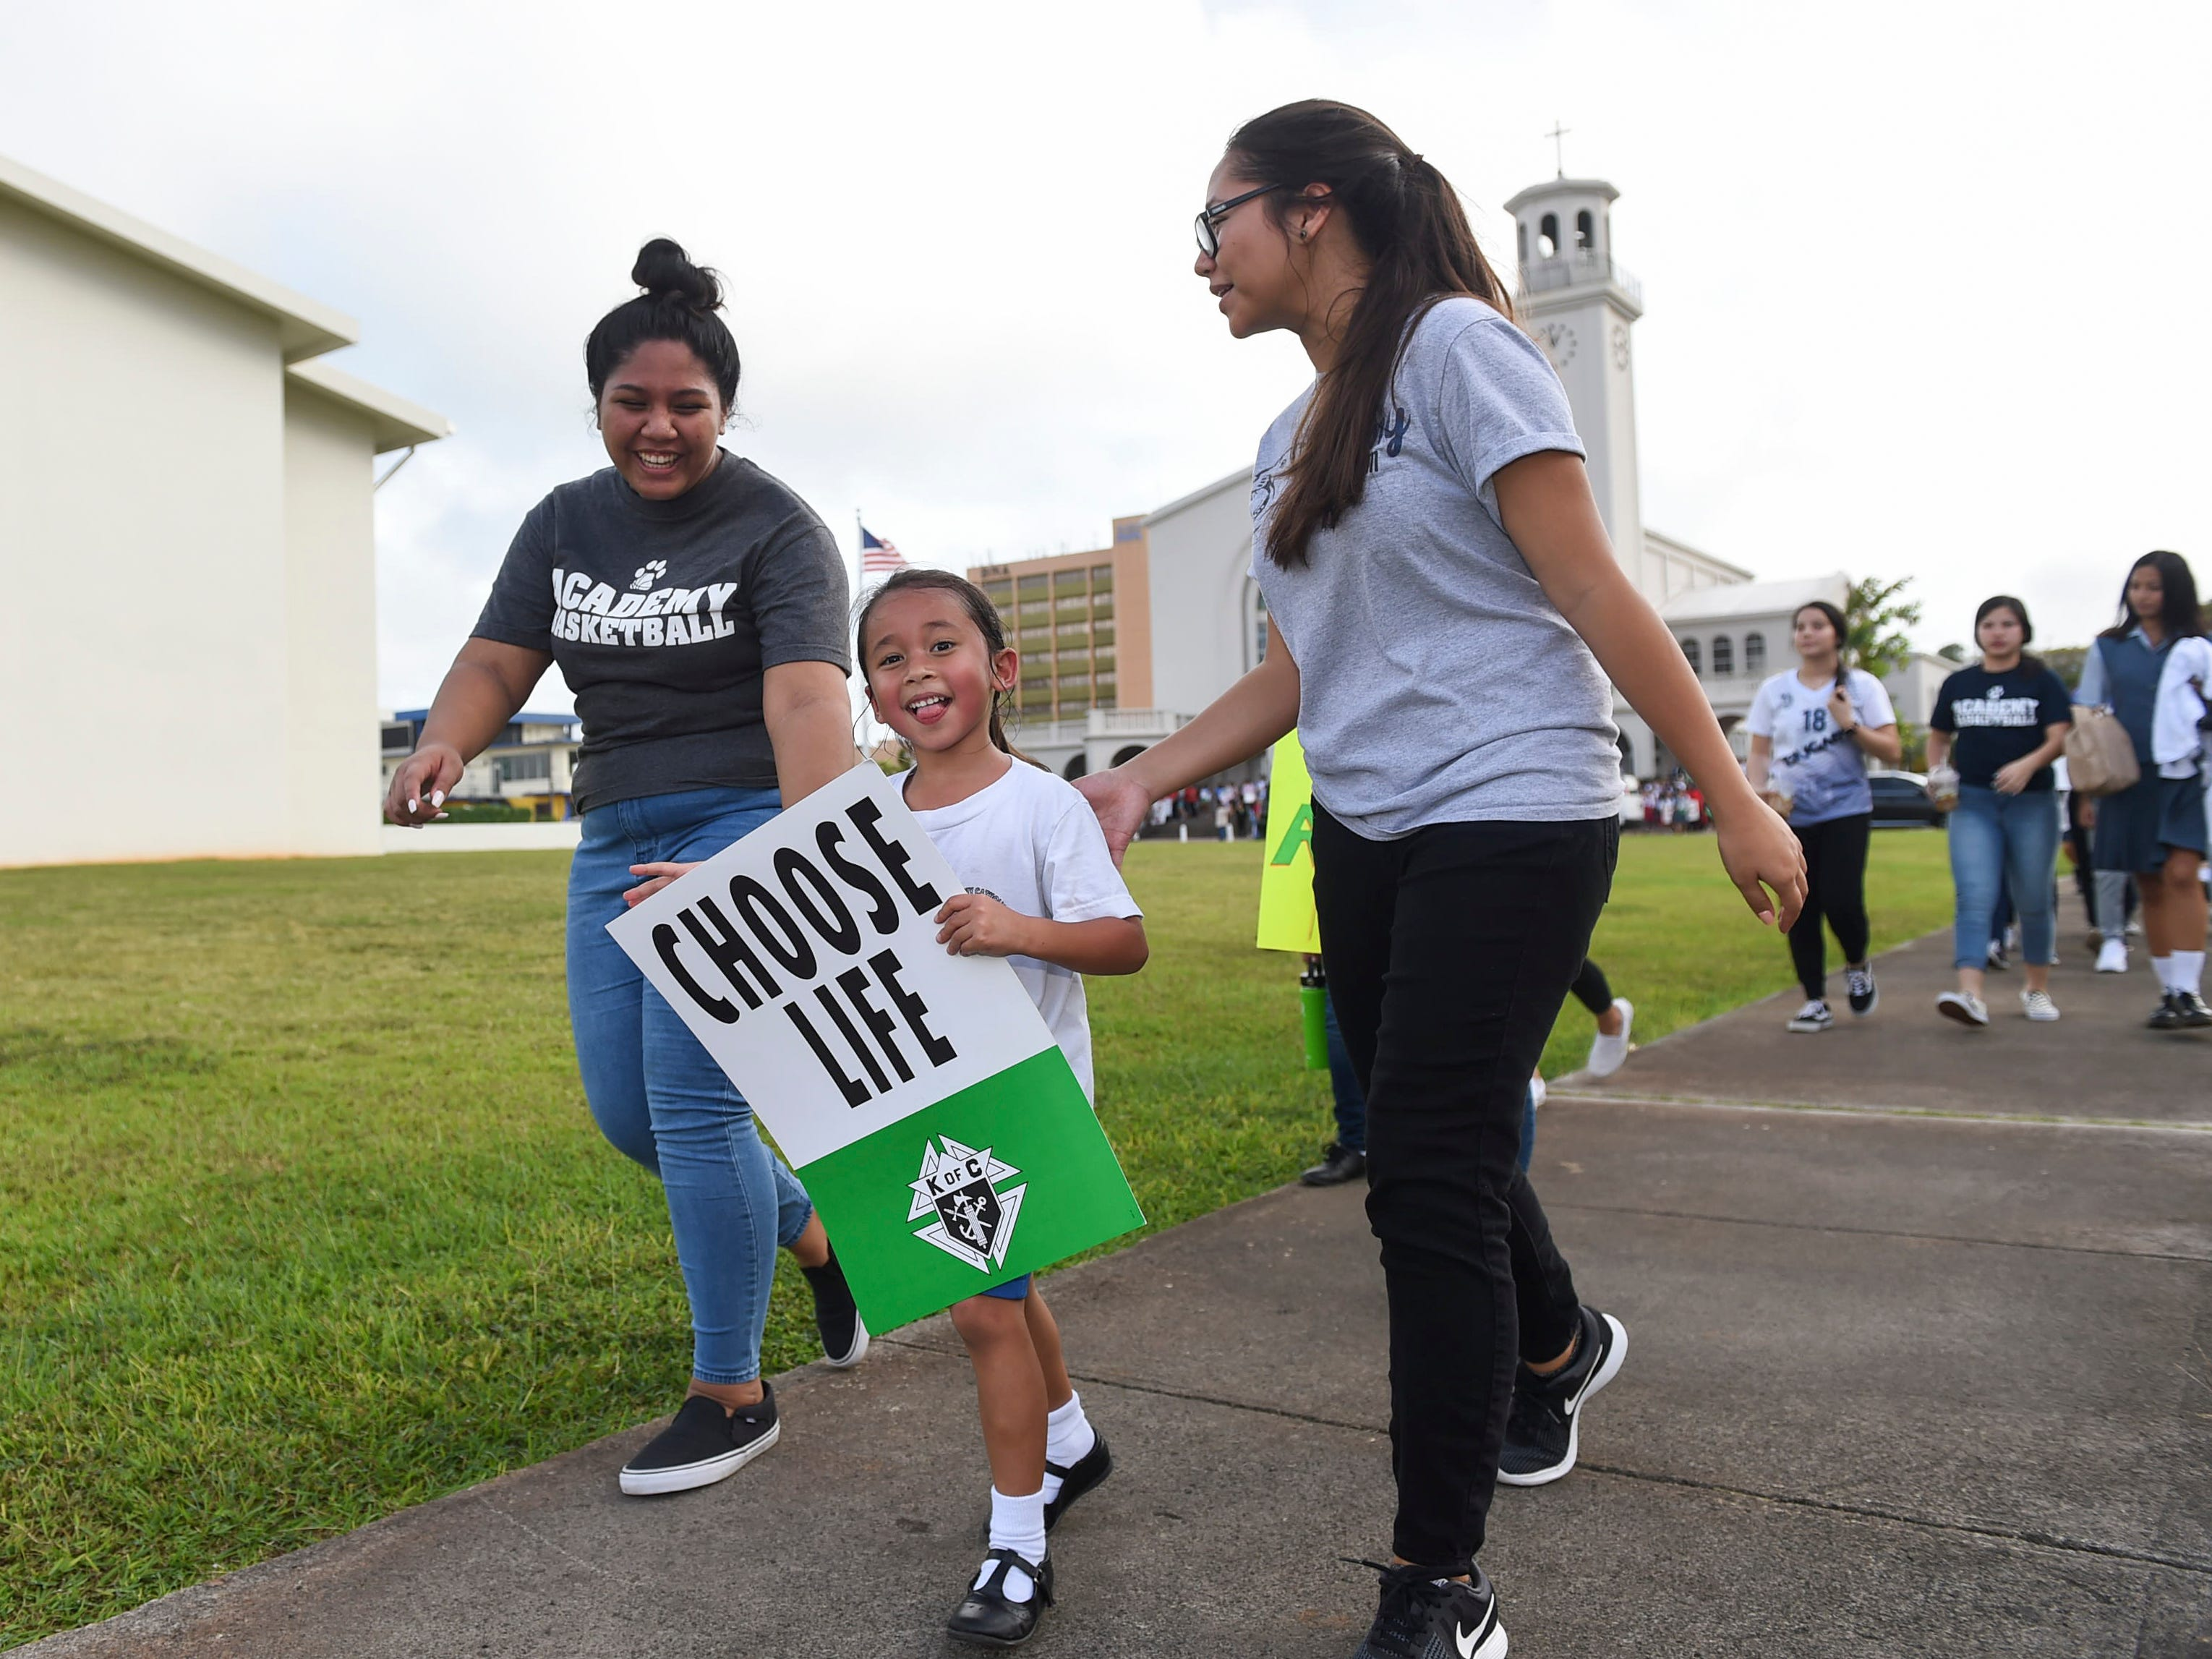 Pro-life supporters begin their March for Life event, an annual anti-abortion event spearheaded by the Guam Catholic Pro-Life Committee, at the Dulce Nombre de Maria Cathedral-Basilica in Hagåtña on Jan. 18, 2019.